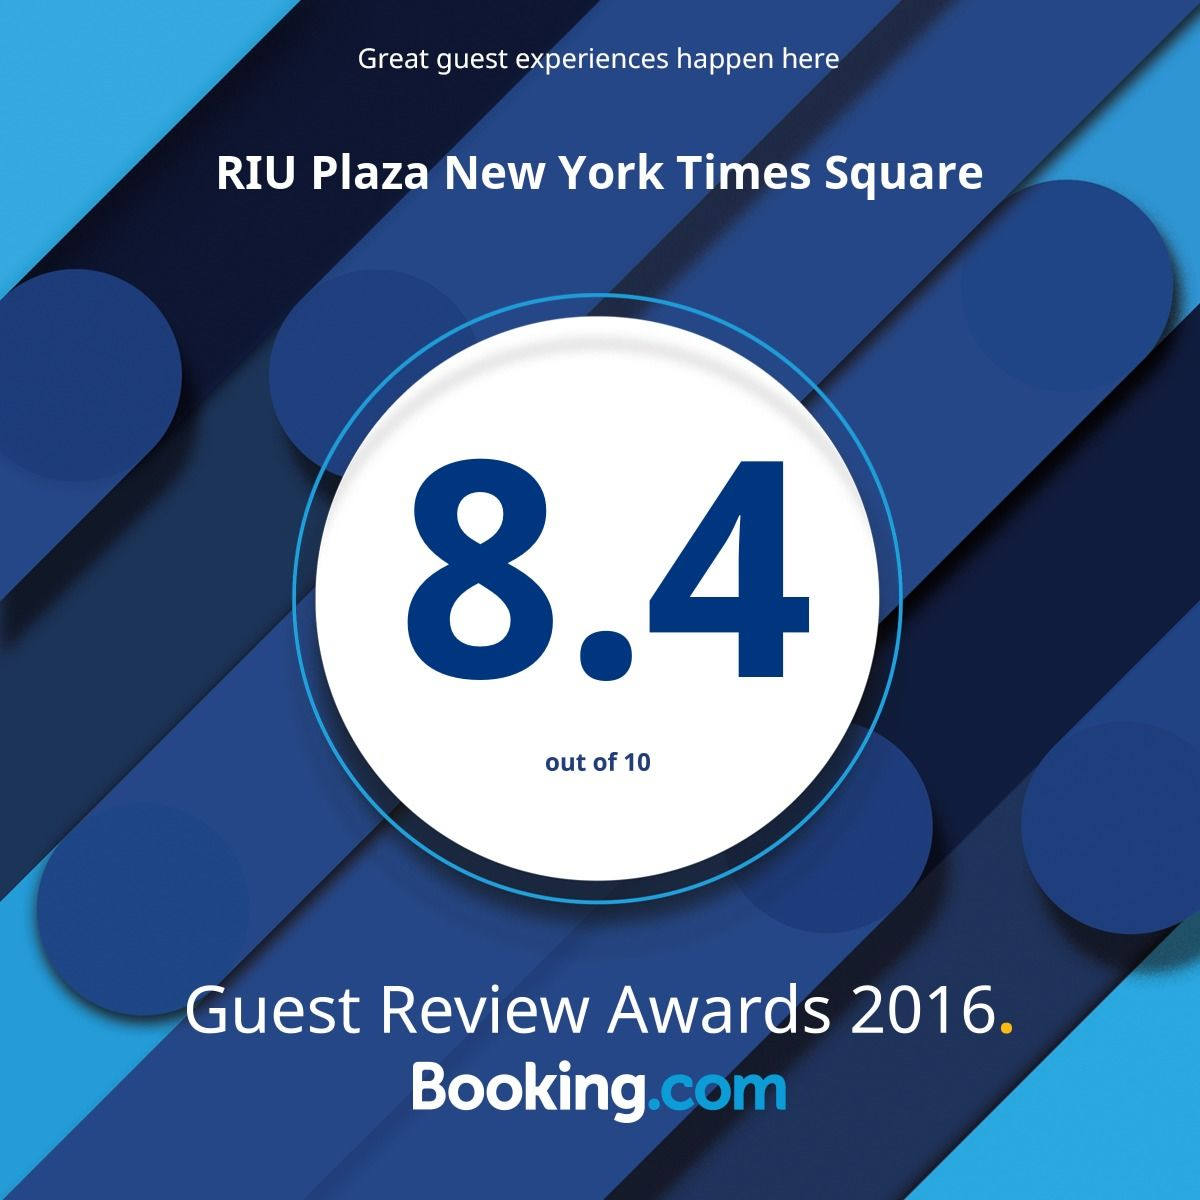 hotel riu plaza new york times square riu plaza hotels guest review awards 2016